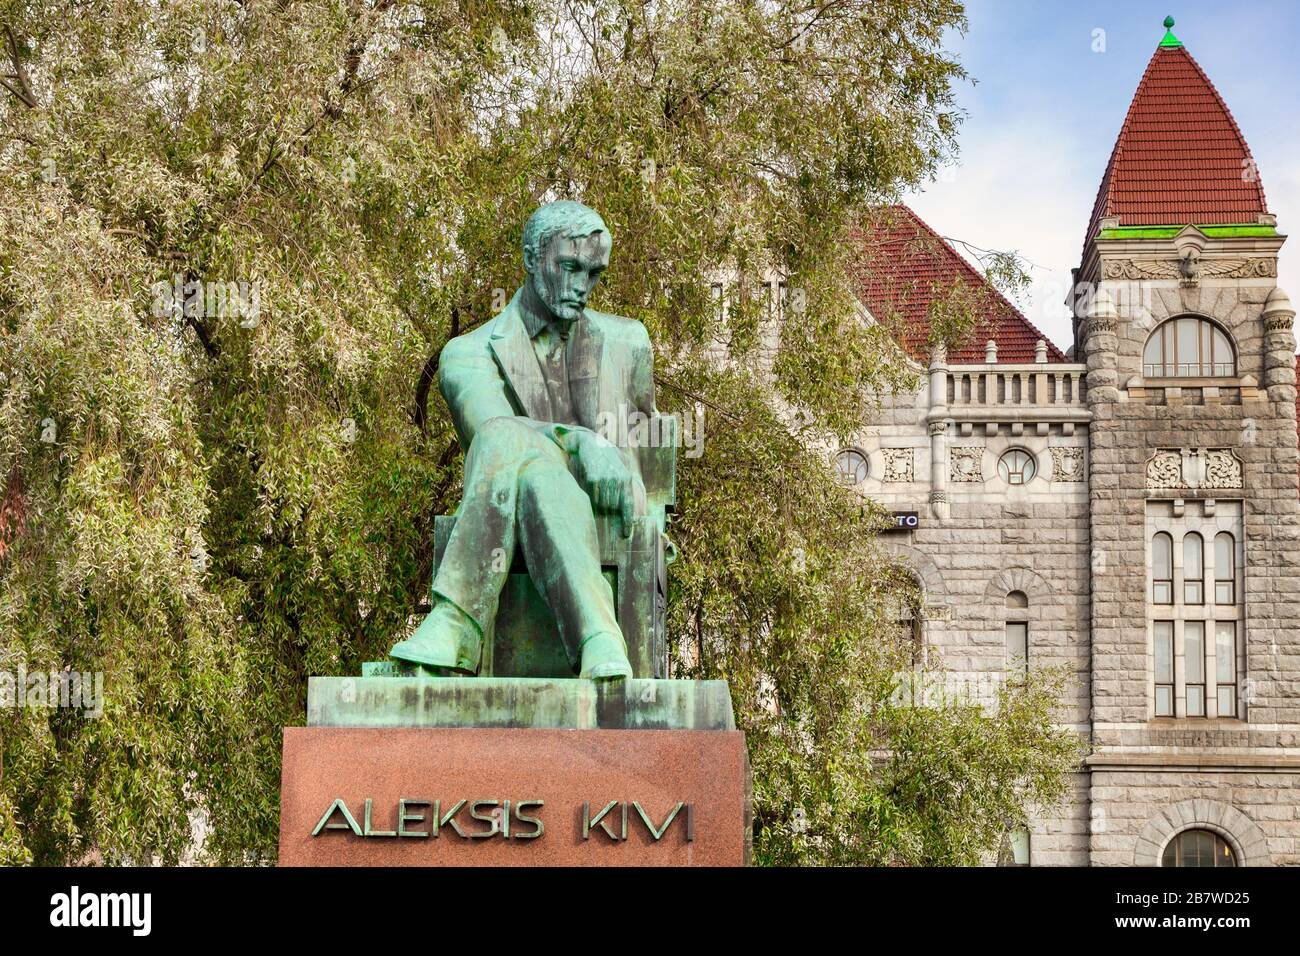 20 September 2018: Helsinki, Finland - Statue of Alexis Kivi, author,  who wrote the first significant novel in the Finnish language, Seven Brothers. Stock Photo